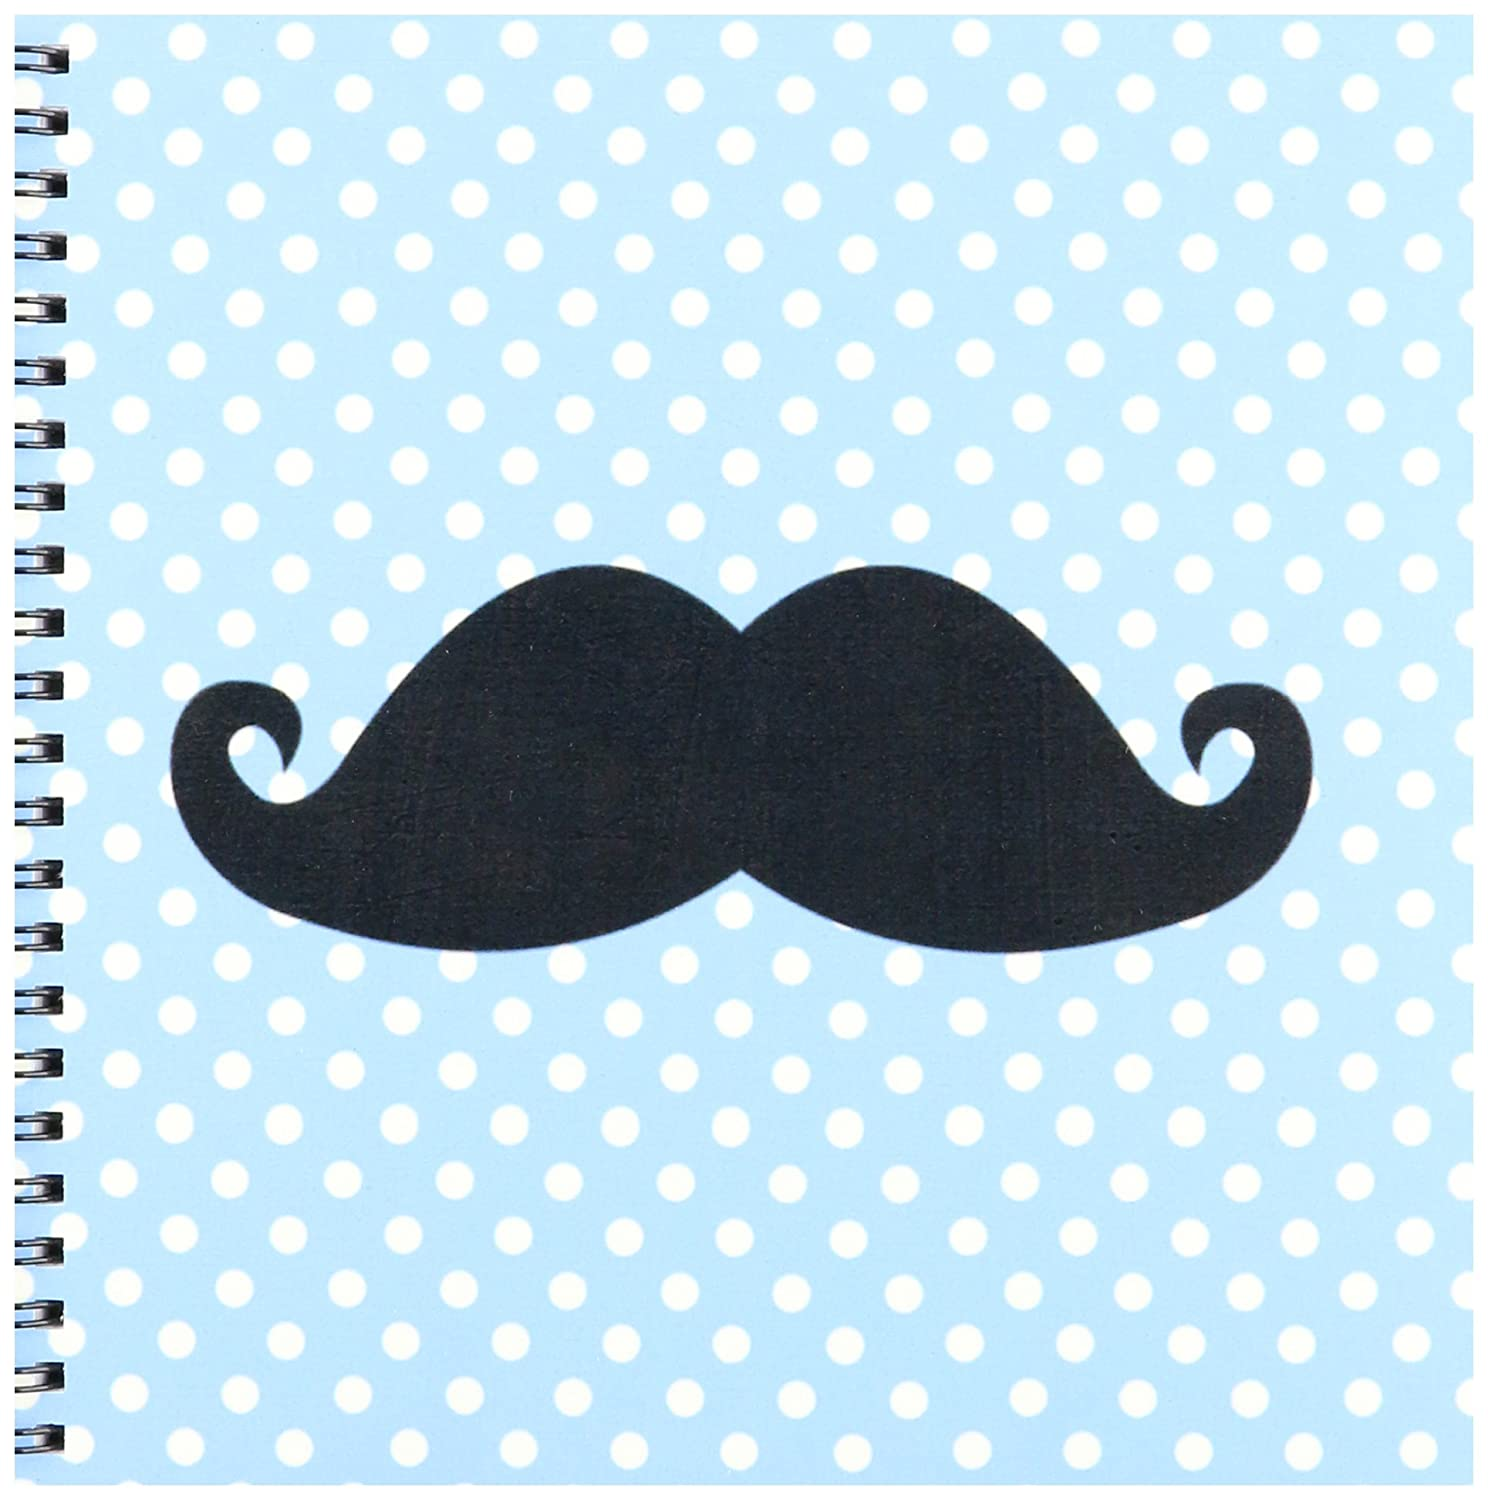 8 by 8-Inch 3dRose db/_110763/_1 Funny Black Mustache on Blue Polka Dots-Drawing Book